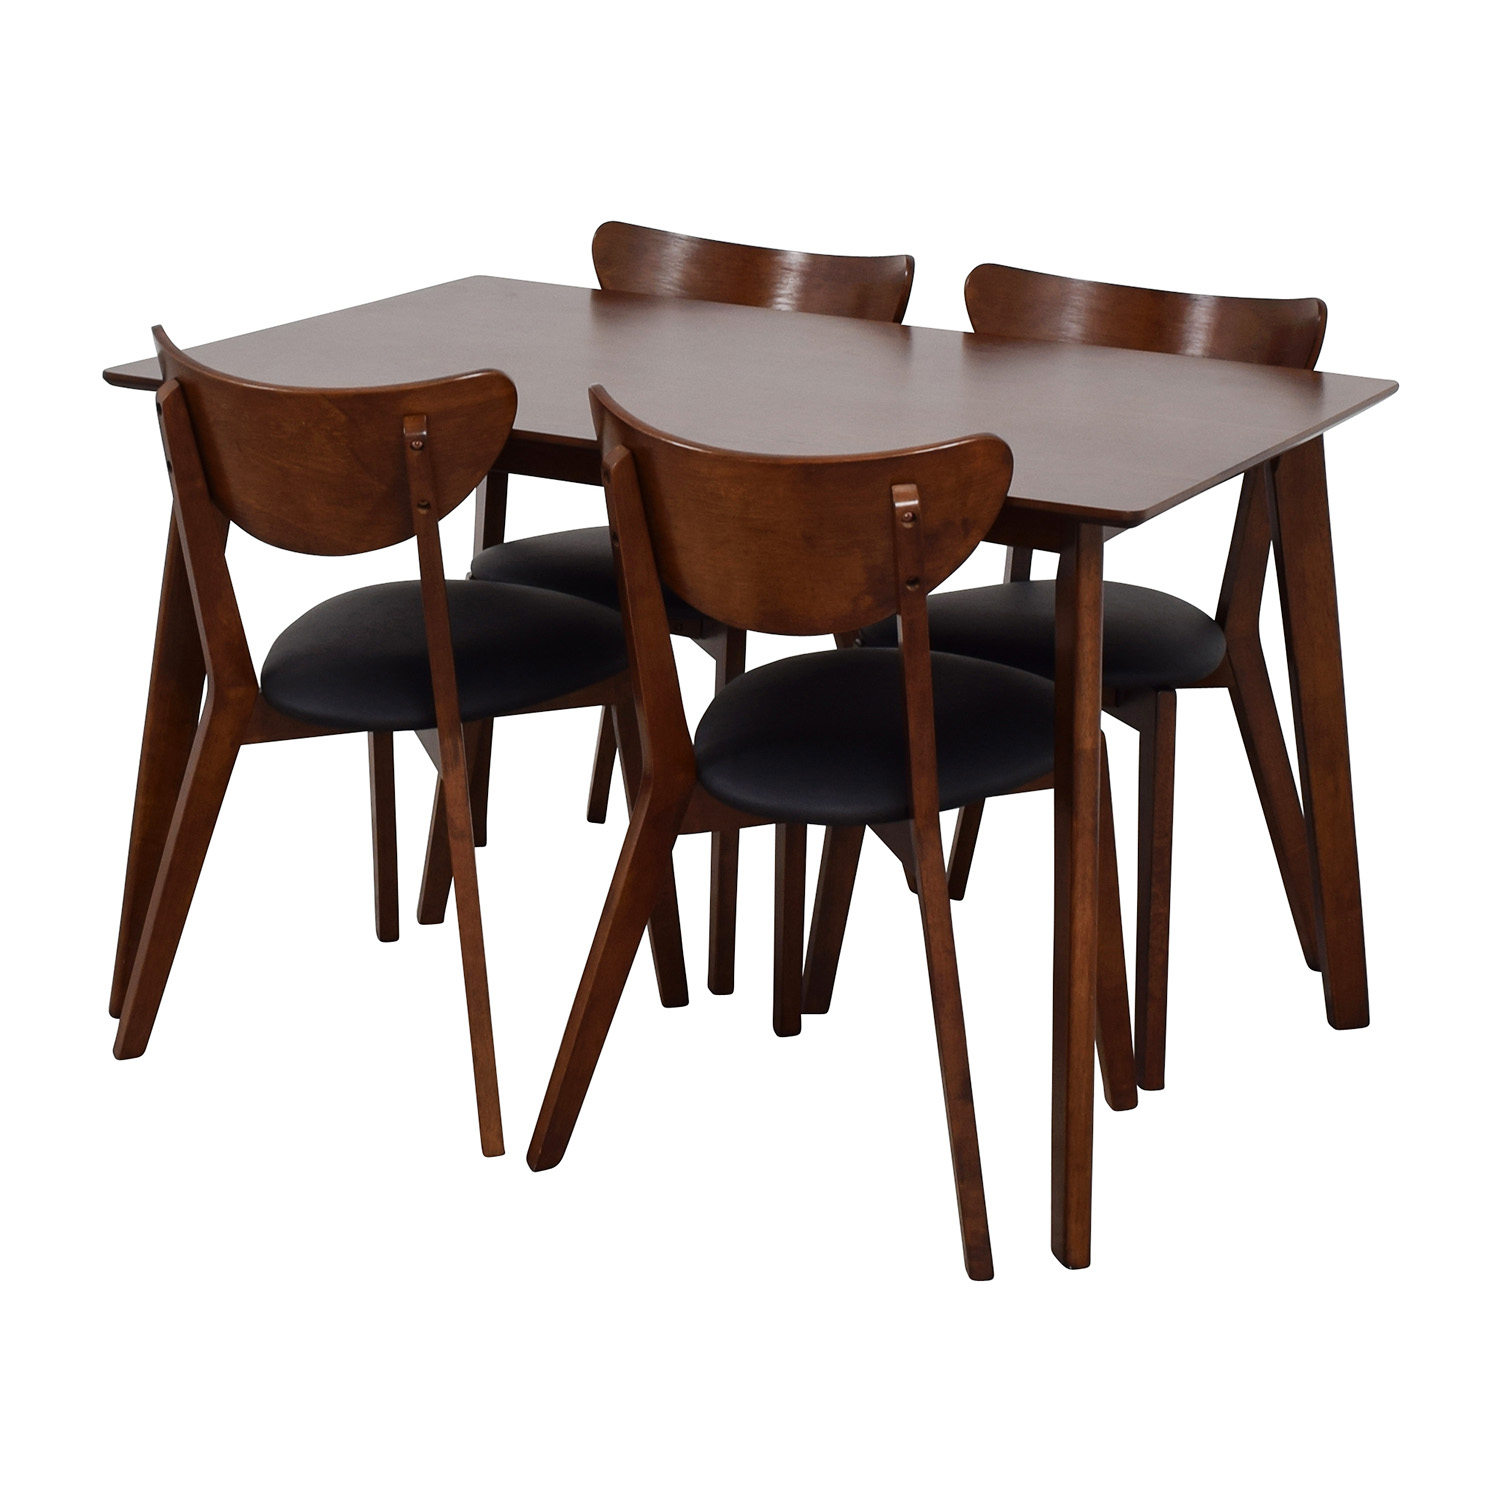 35 off wholesale interiors brown dining table set with for Dinner table set for 4